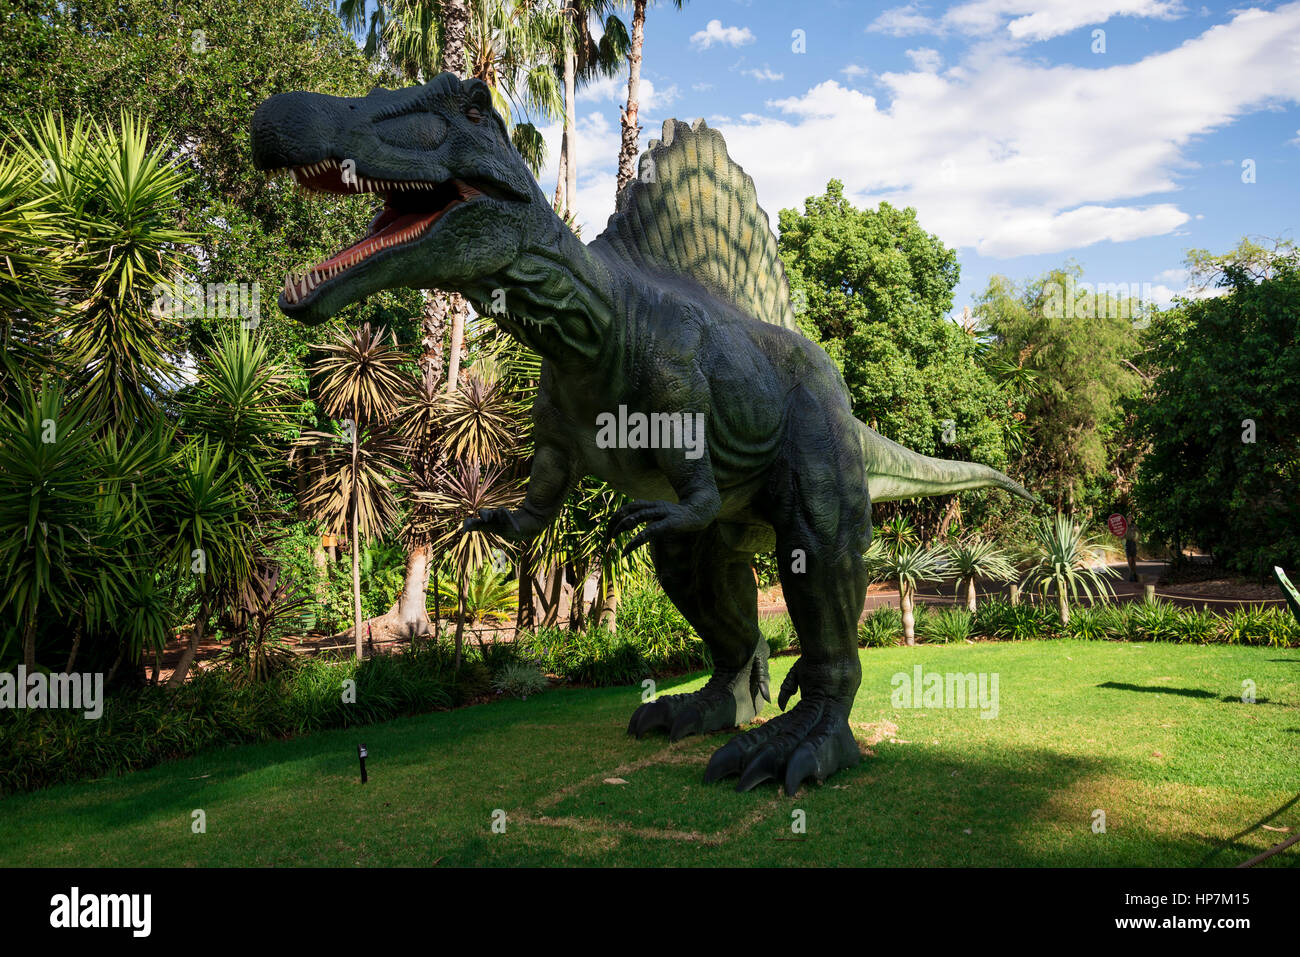 Roaring Spinosaurus display model in Perth Zoo as part of Zoorassic exhibition - Stock Image